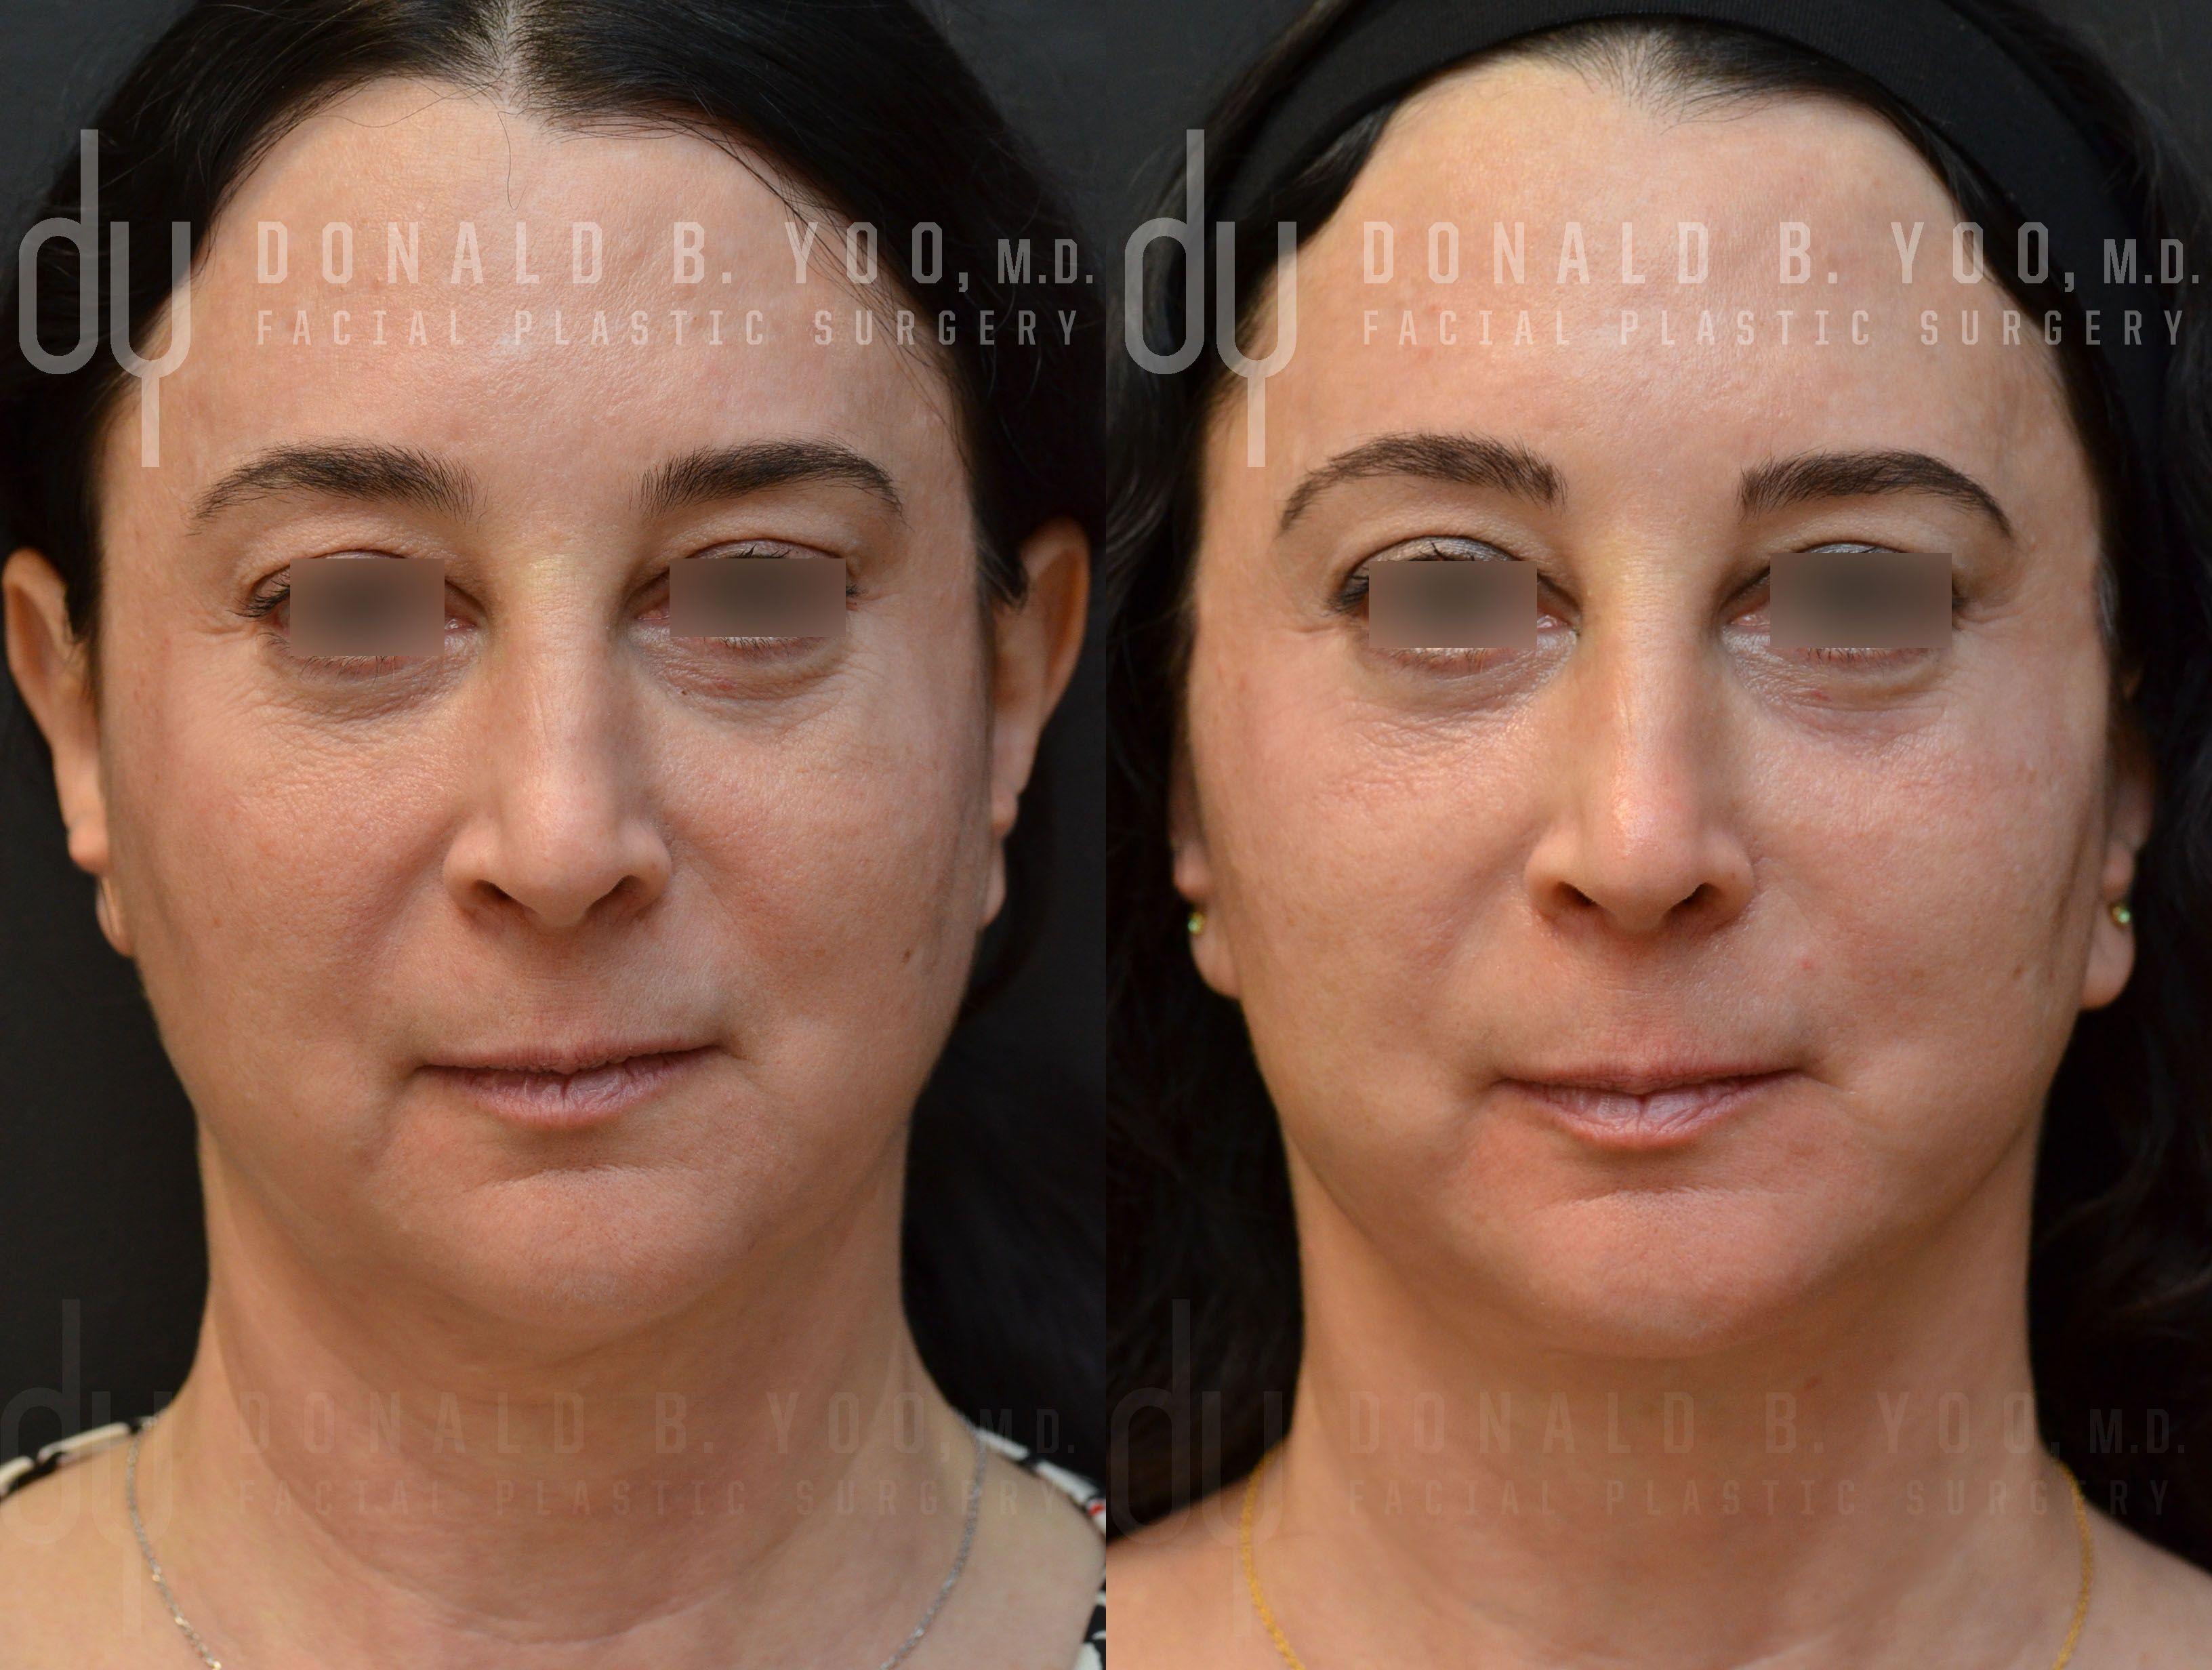 Beverly hill md lift and firming reviews - Beverly Hills Facelift Specialist Dr Donald Yoo Performed A Deep Plane Facelift This Before